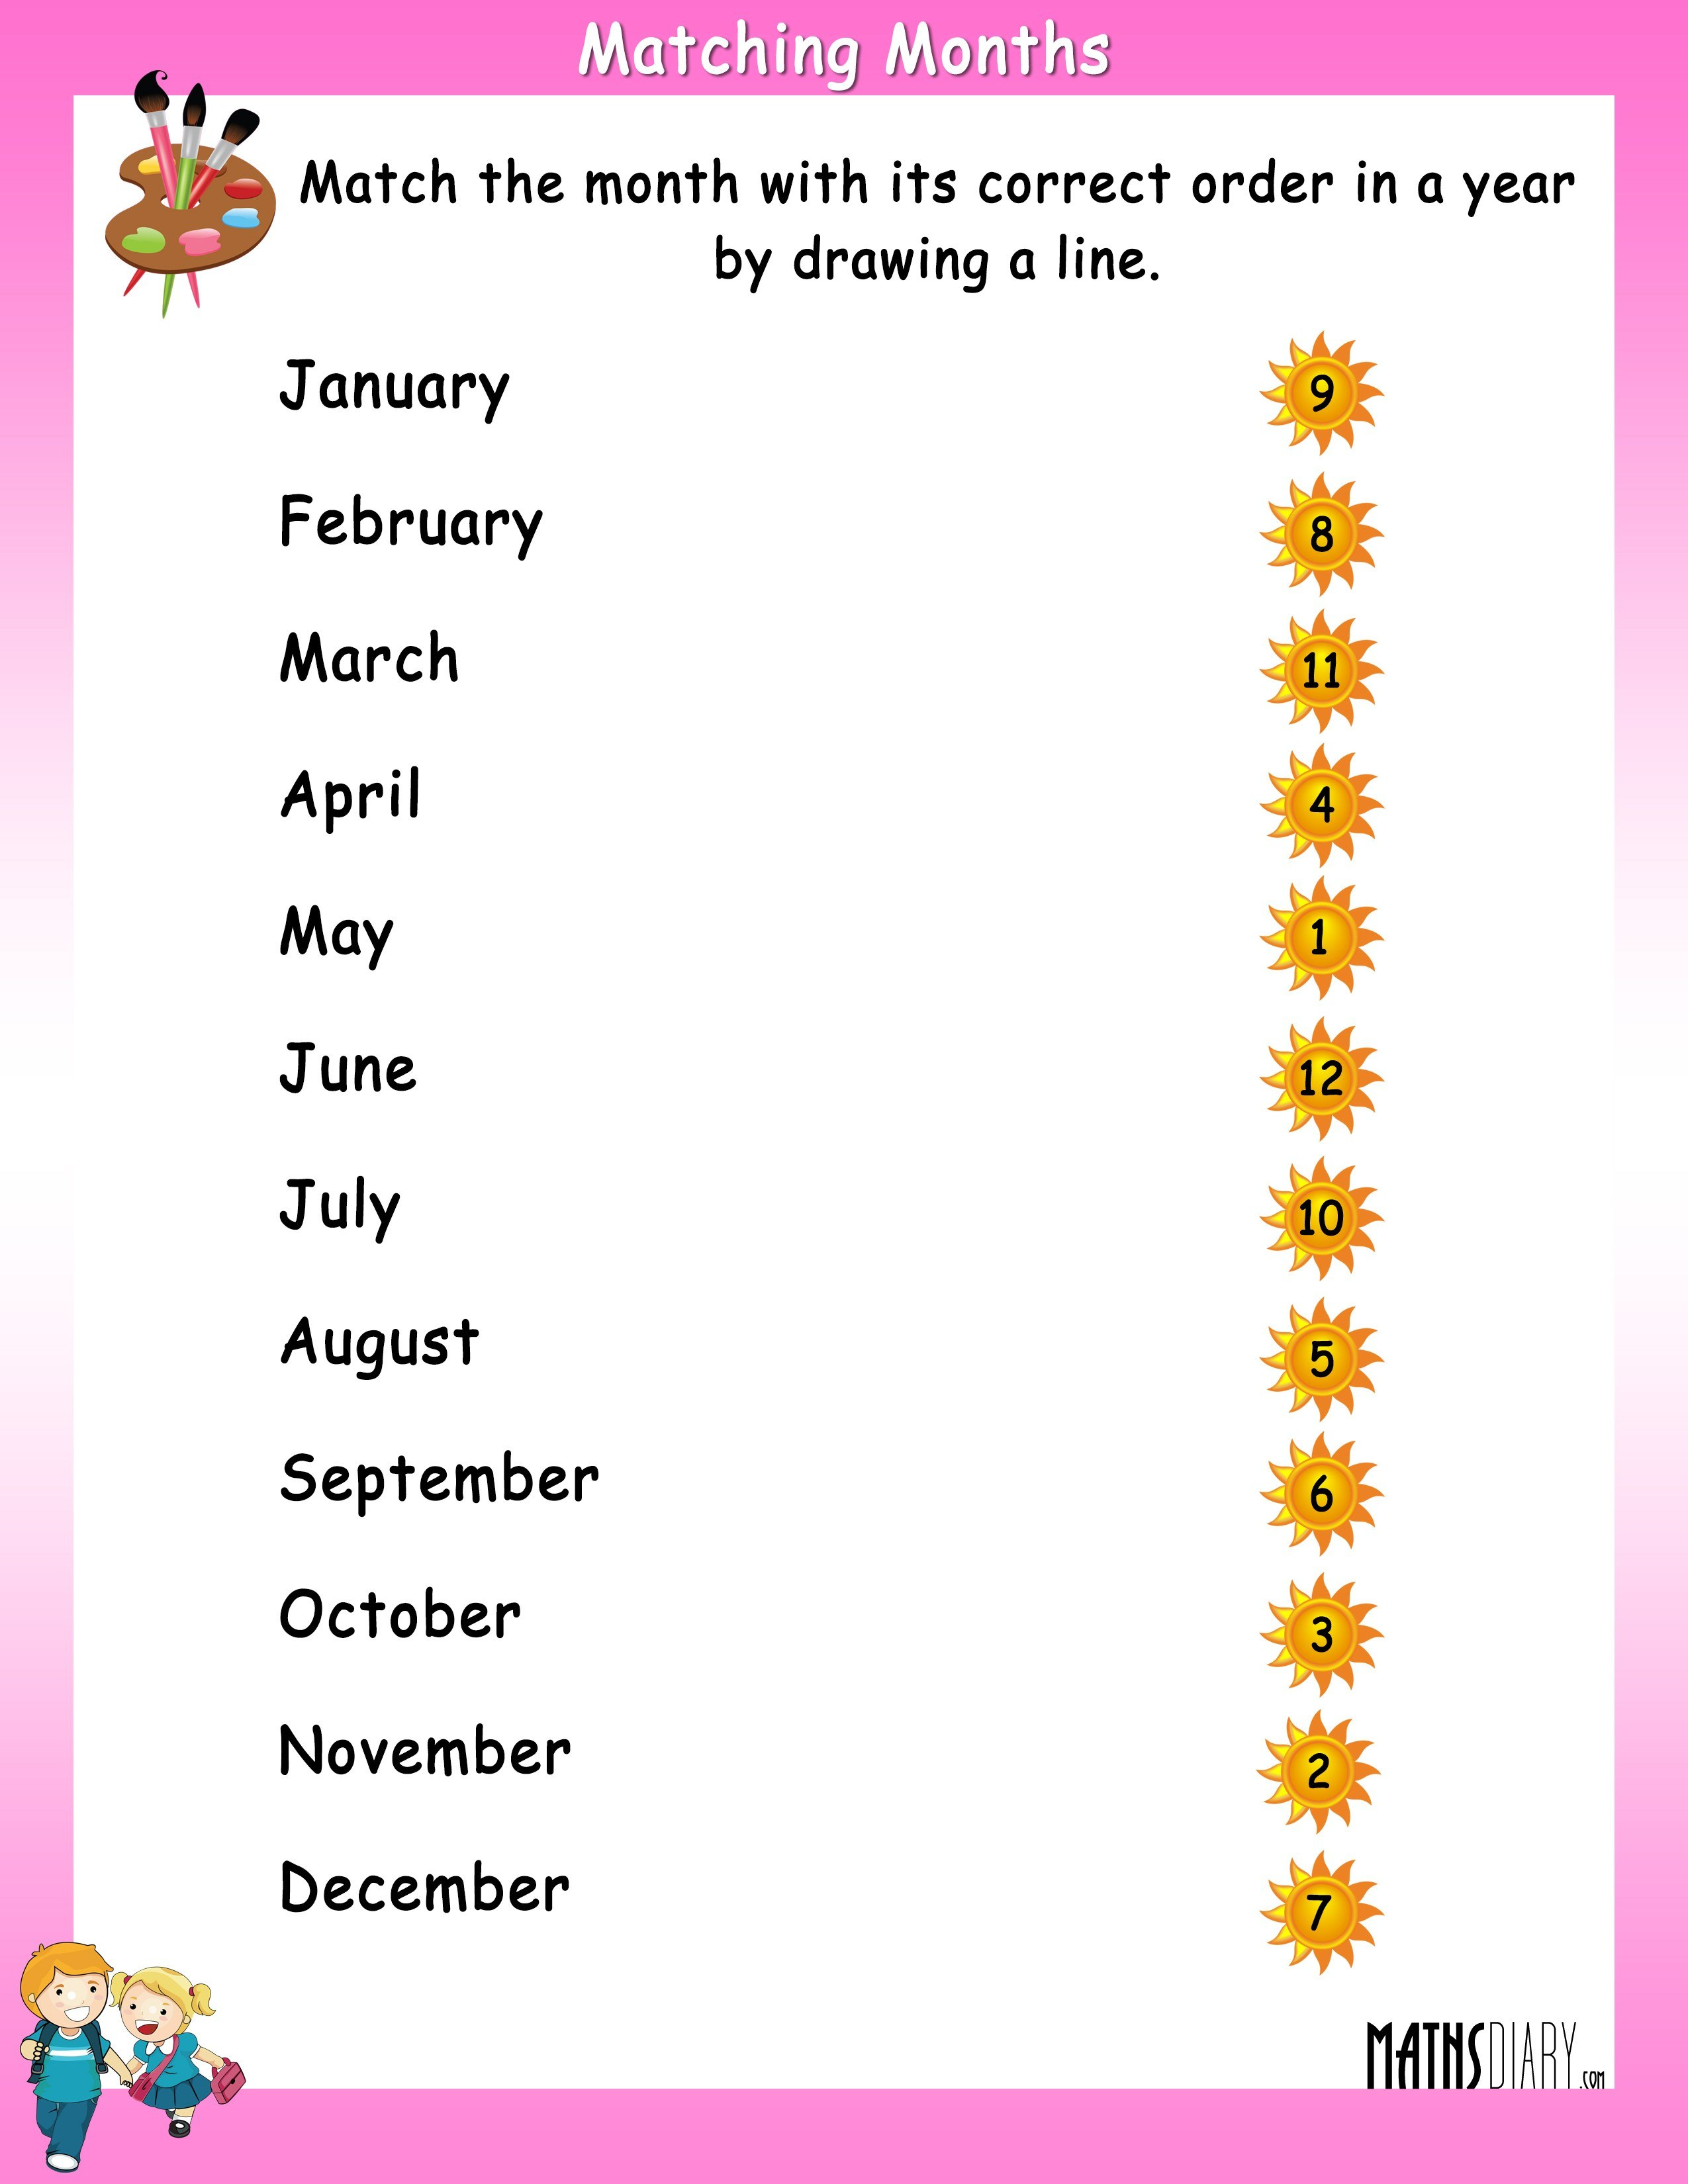 Match The Month With Its Correct Order